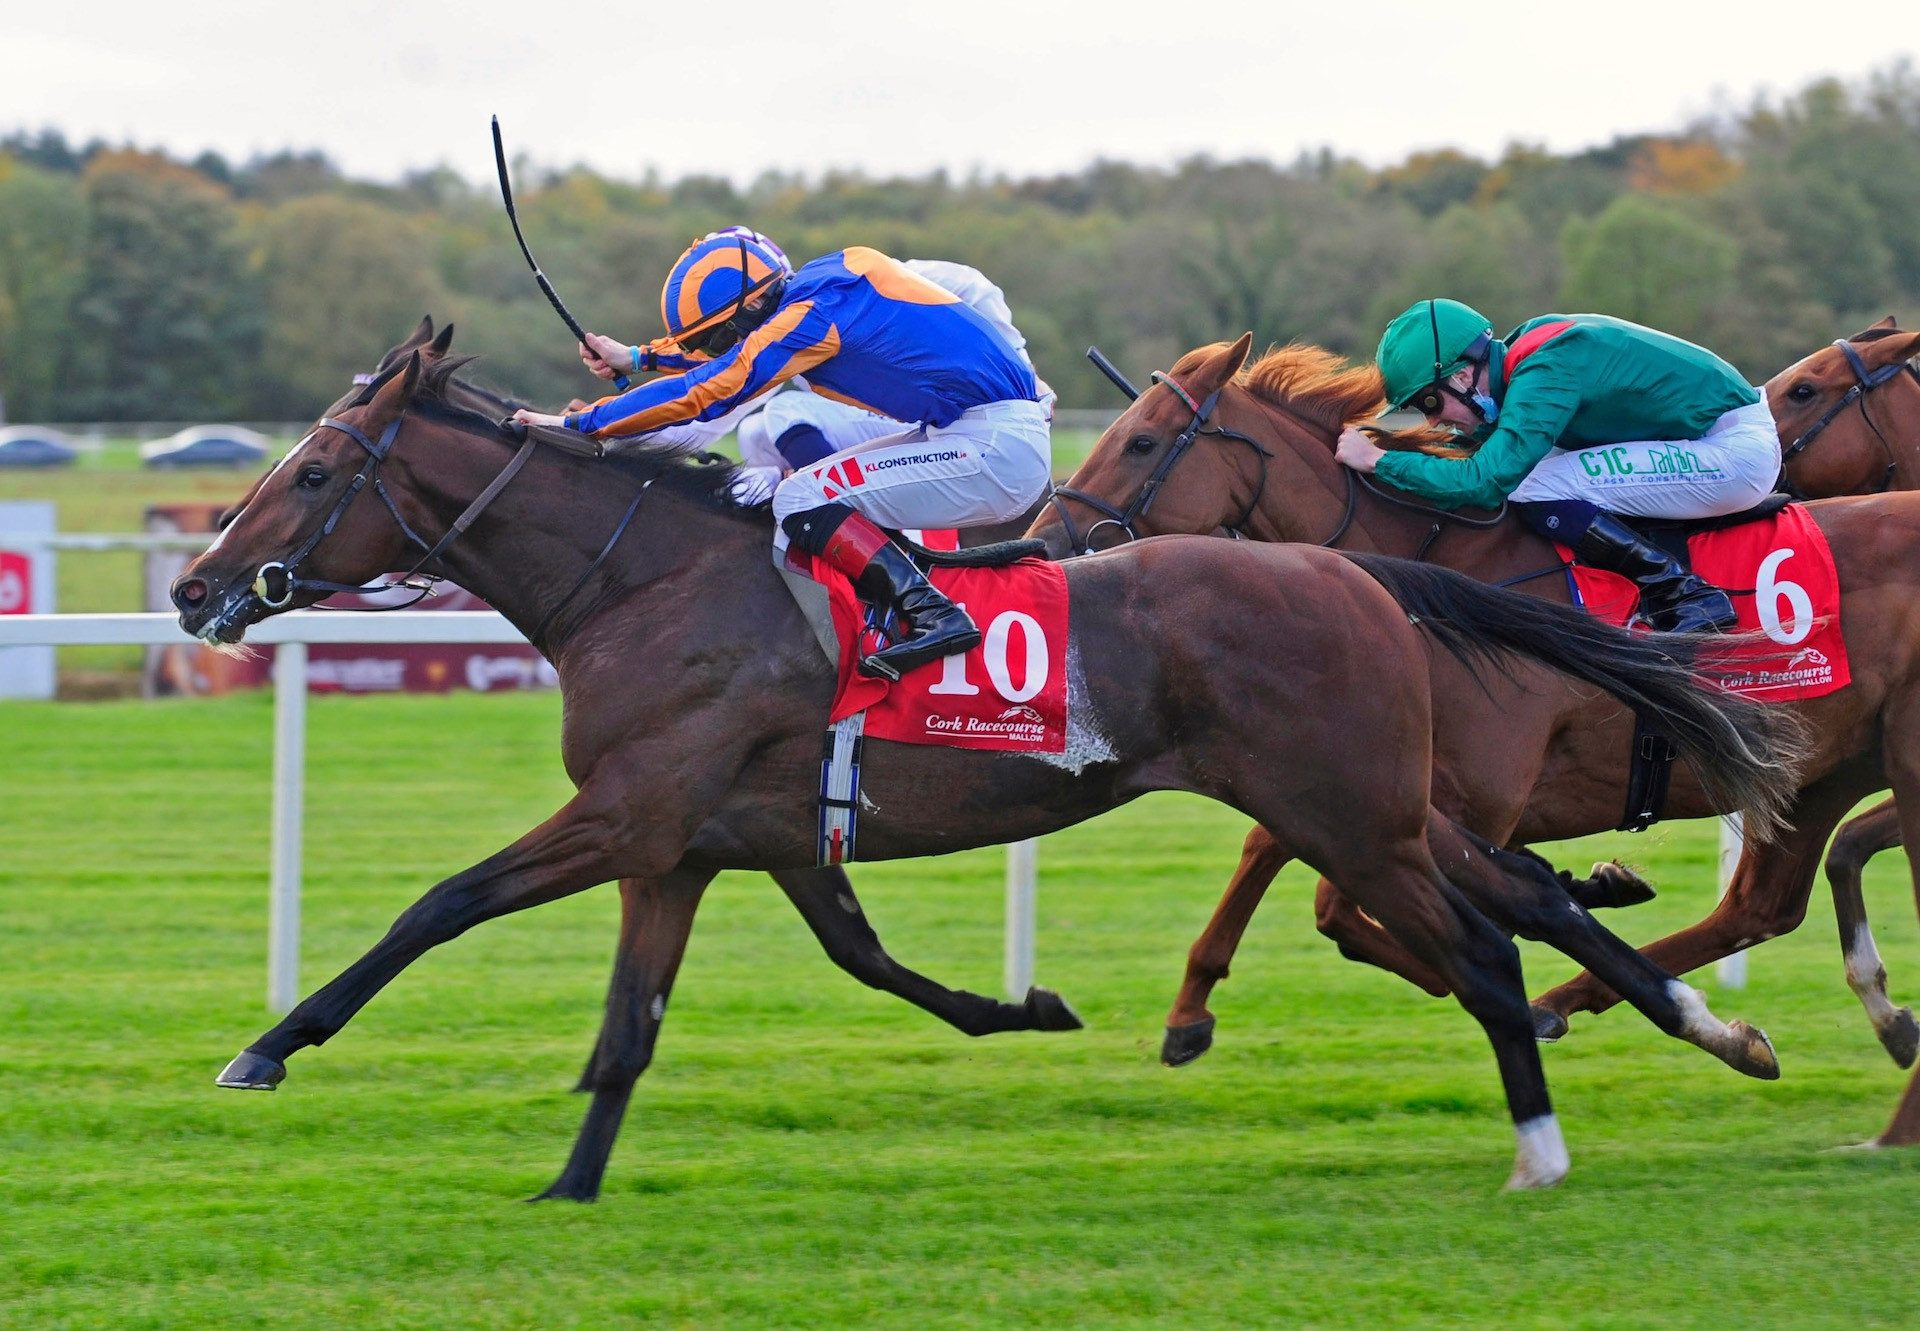 Sir Lucan (Camelot) Wins At Cork